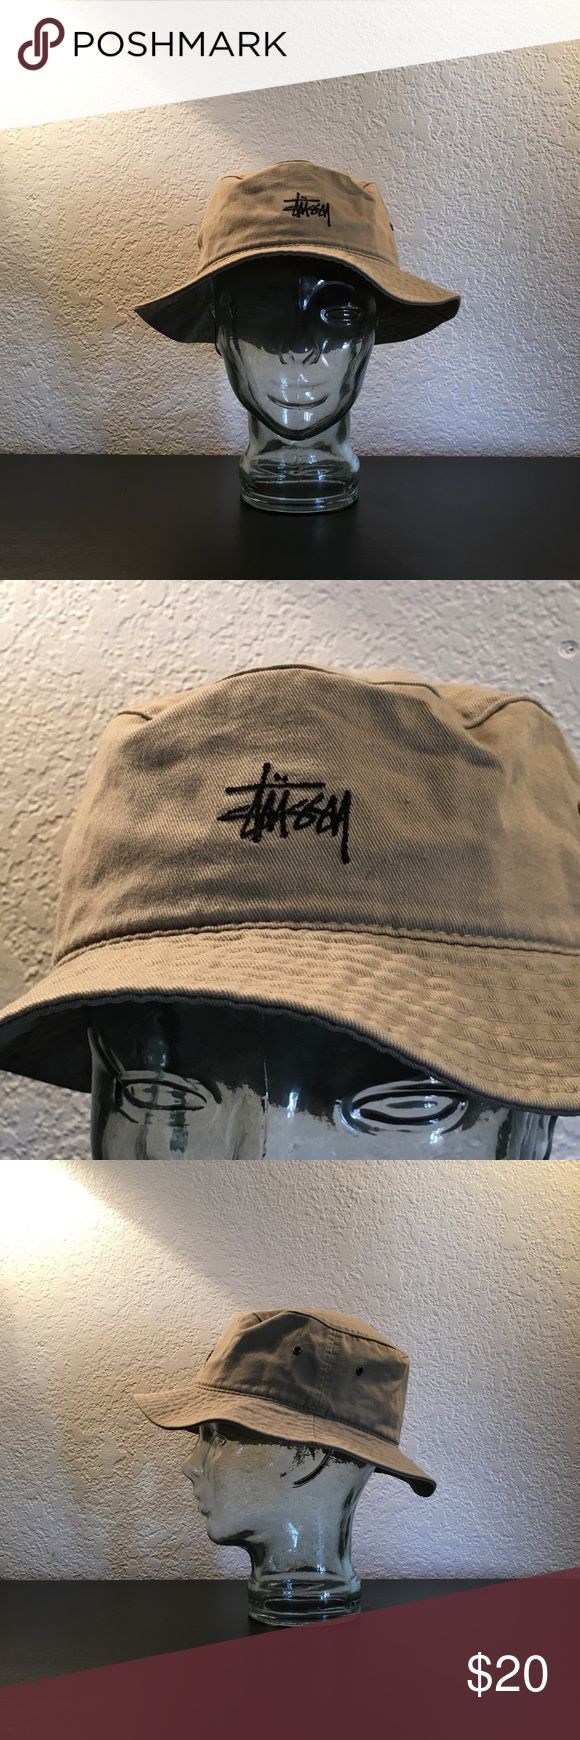 Vintage Stussy Bucket Hat. Unisex. L/XL. Vintage Stussy Bucket Hat. Unisex. L/XL.  Fantastic condition.  This was my first ever Stussy purchase when I was a kid, so it's definitely a relic. 🔥 Stussy Accessories Hats